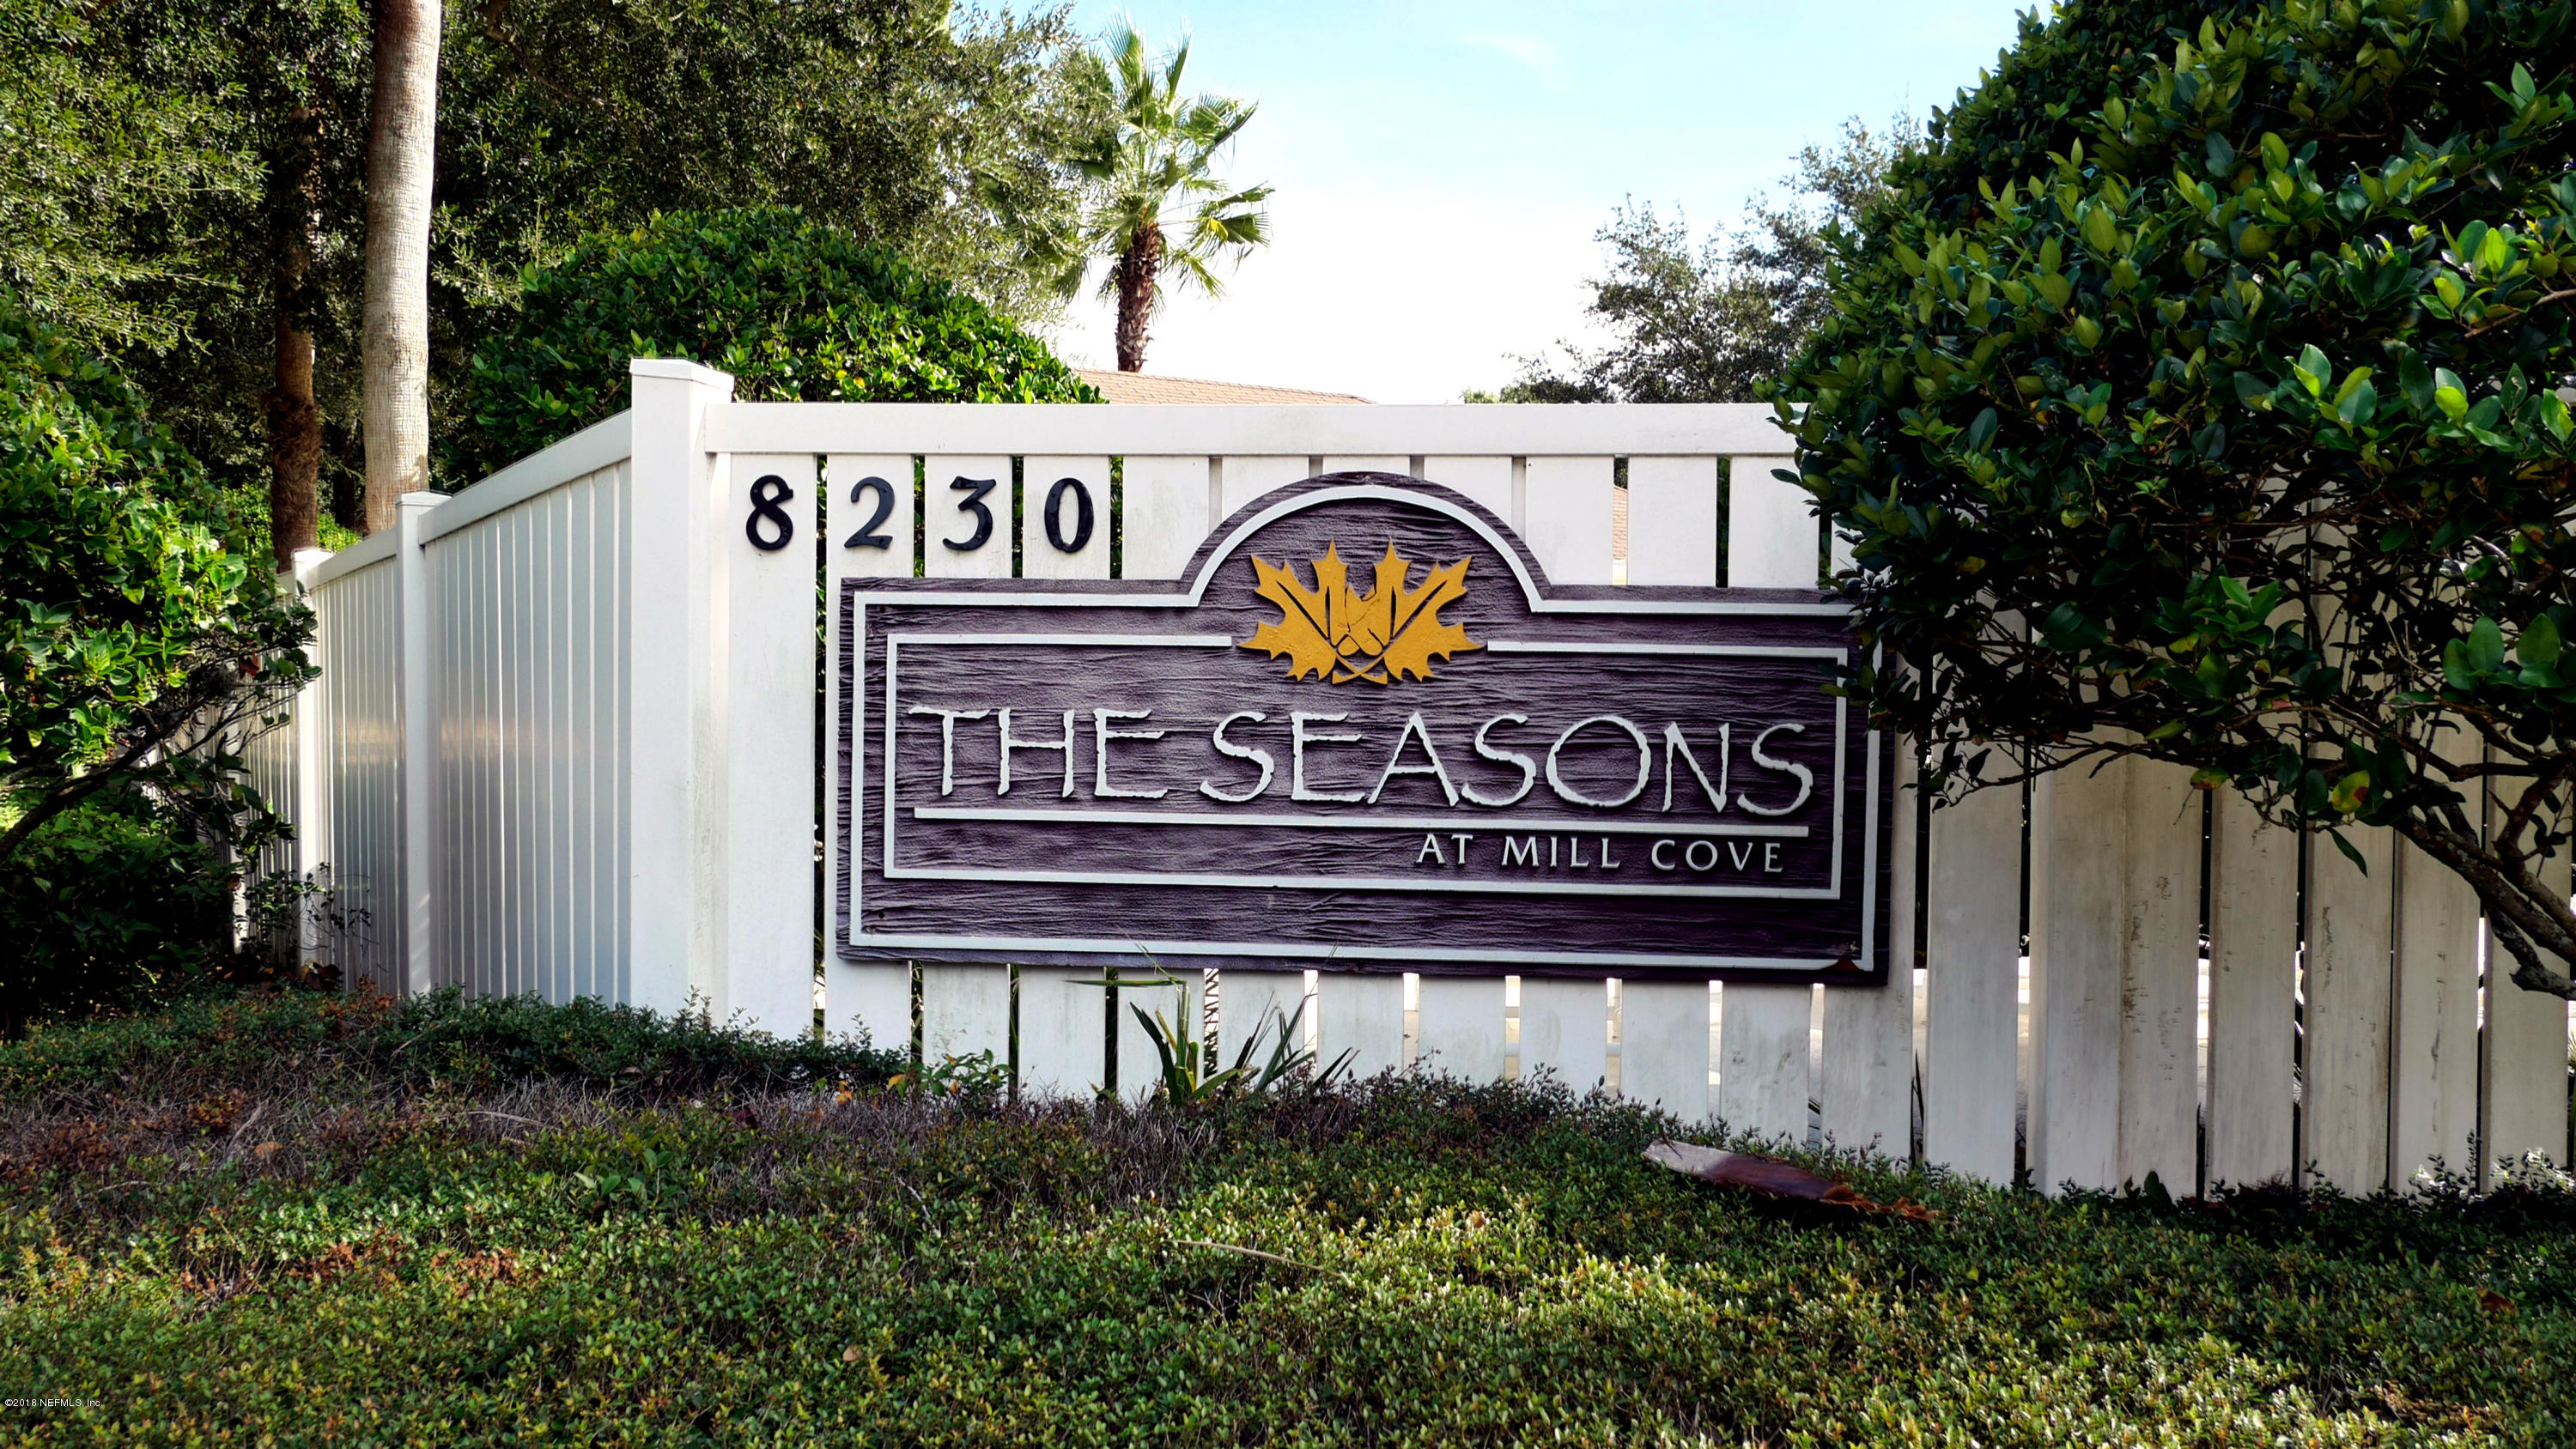 8230 DAMES POINT CROSSING, JACKSONVILLE, FLORIDA 32277, 2 Bedrooms Bedrooms, ,2 BathroomsBathrooms,Residential - condos/townhomes,For sale,DAMES POINT CROSSING,965521